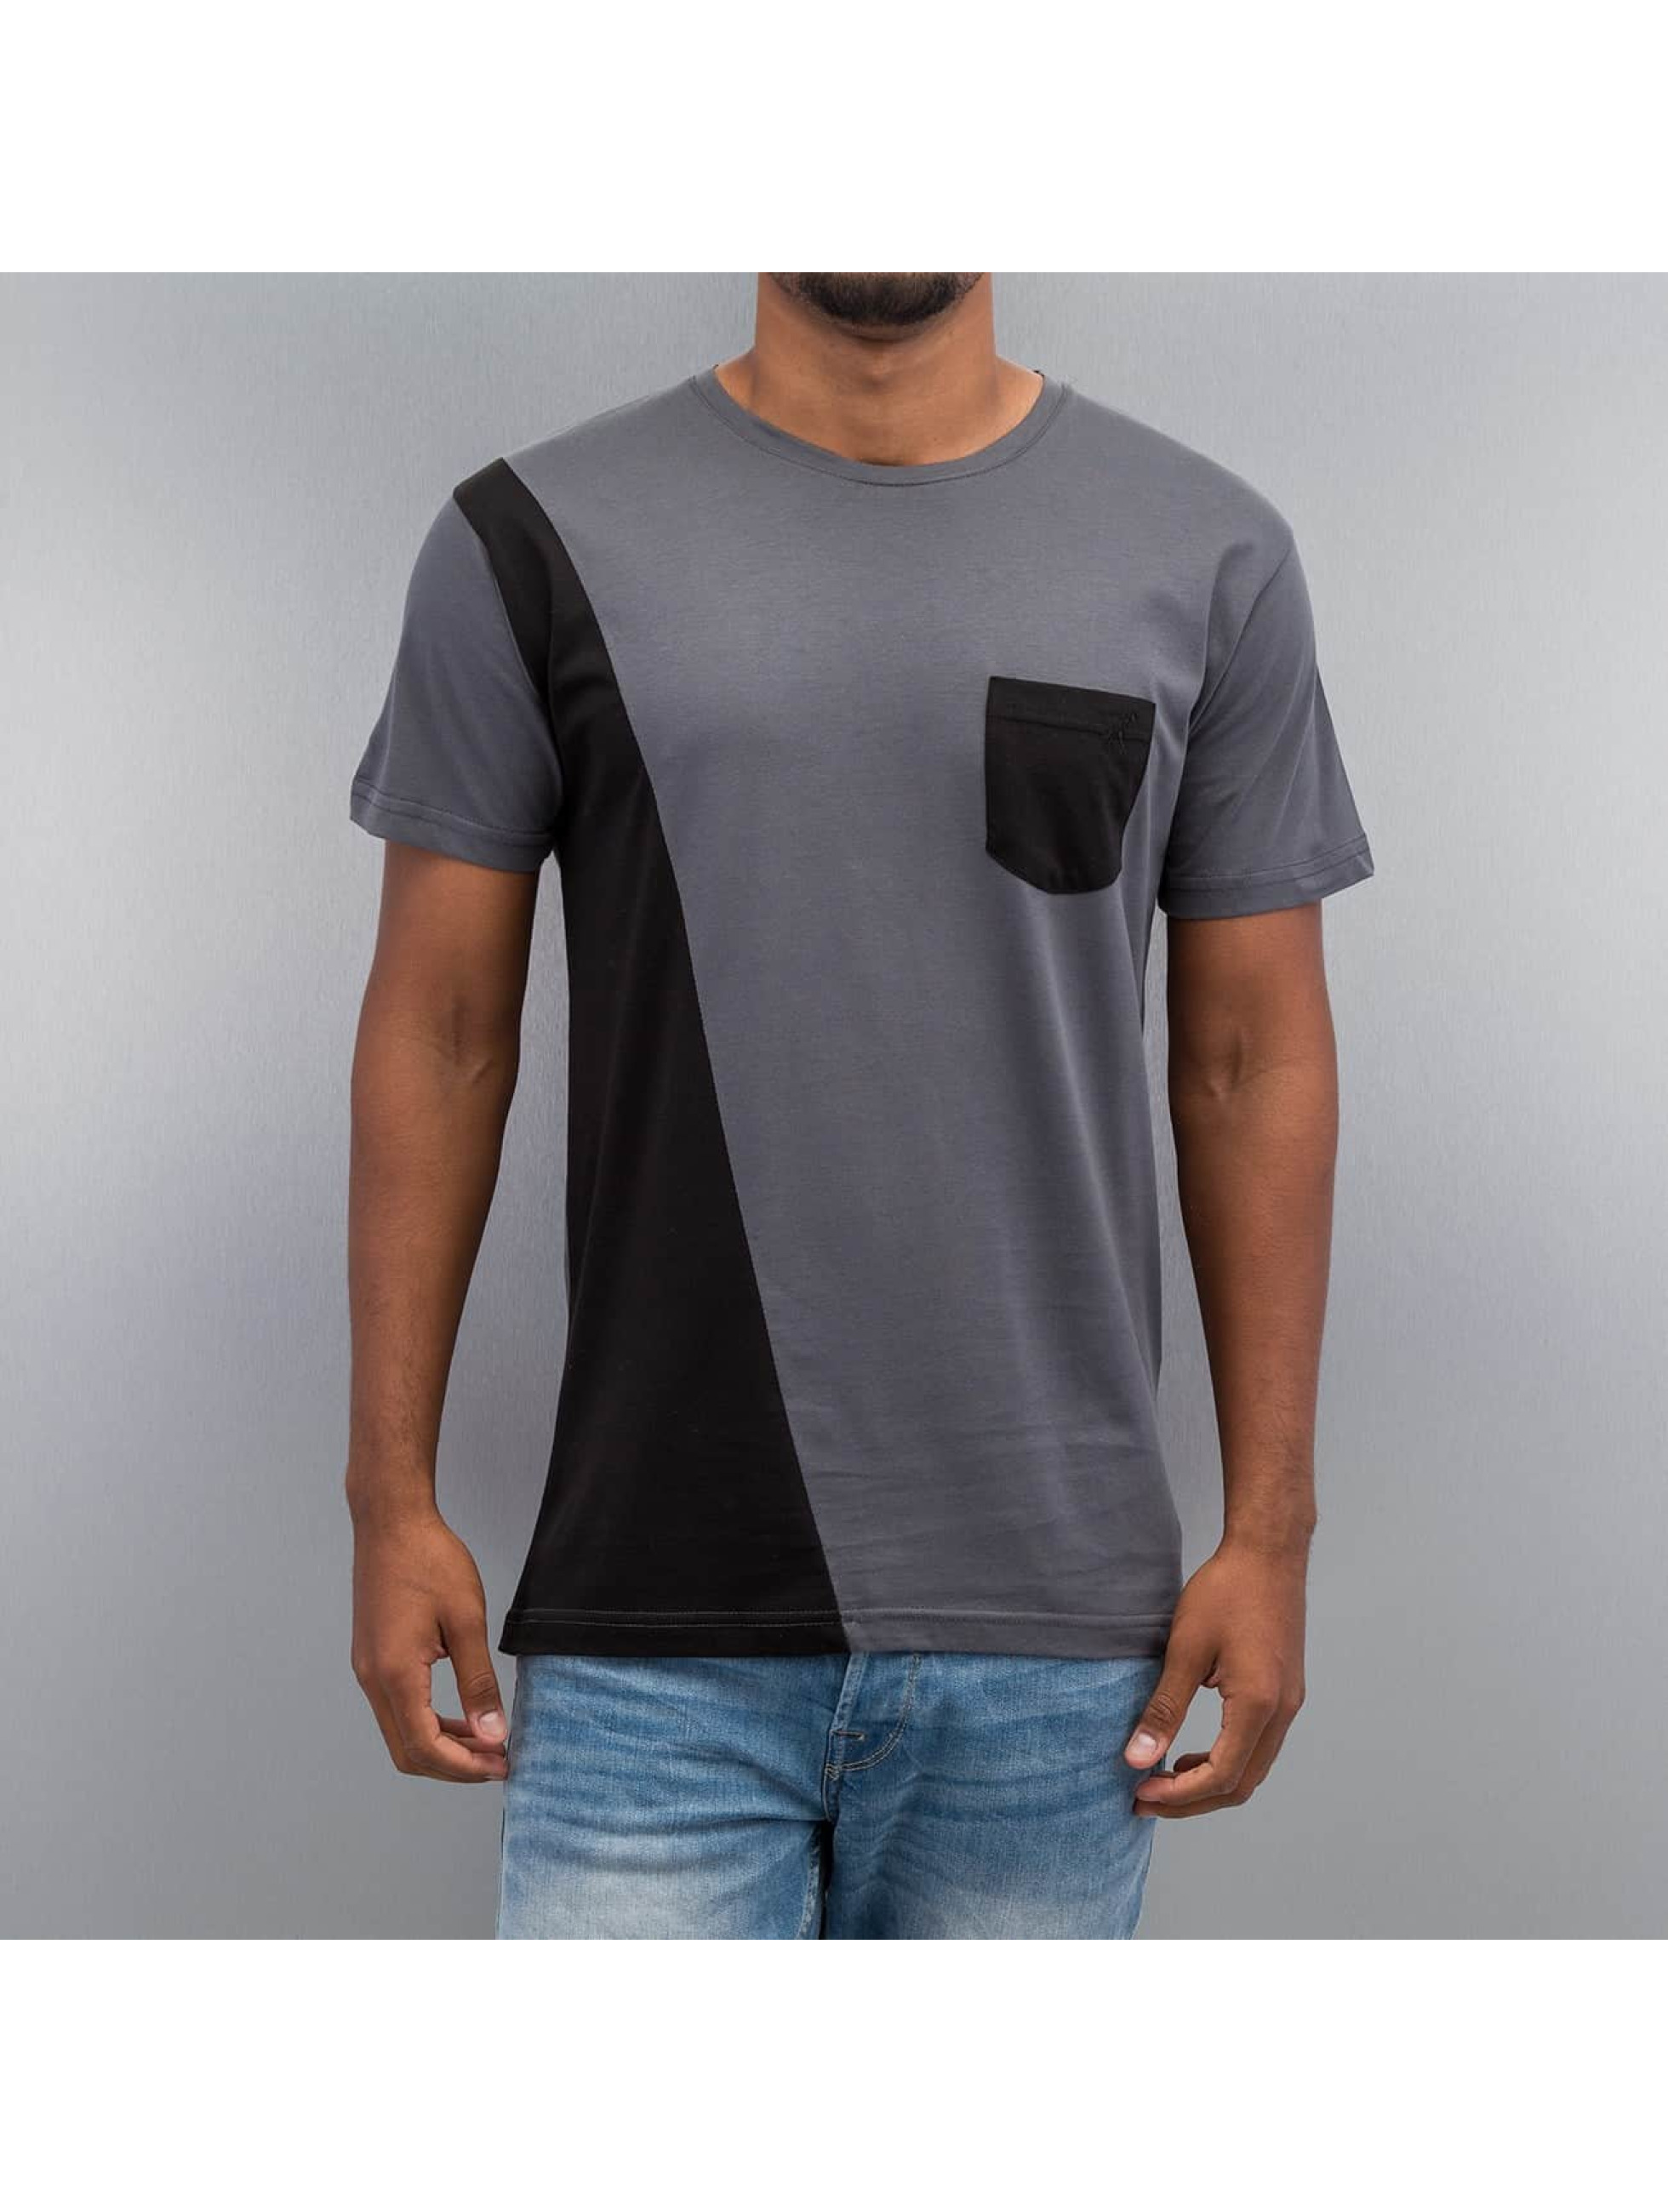 Cazzy Clang T-Shirt Pocket II gris